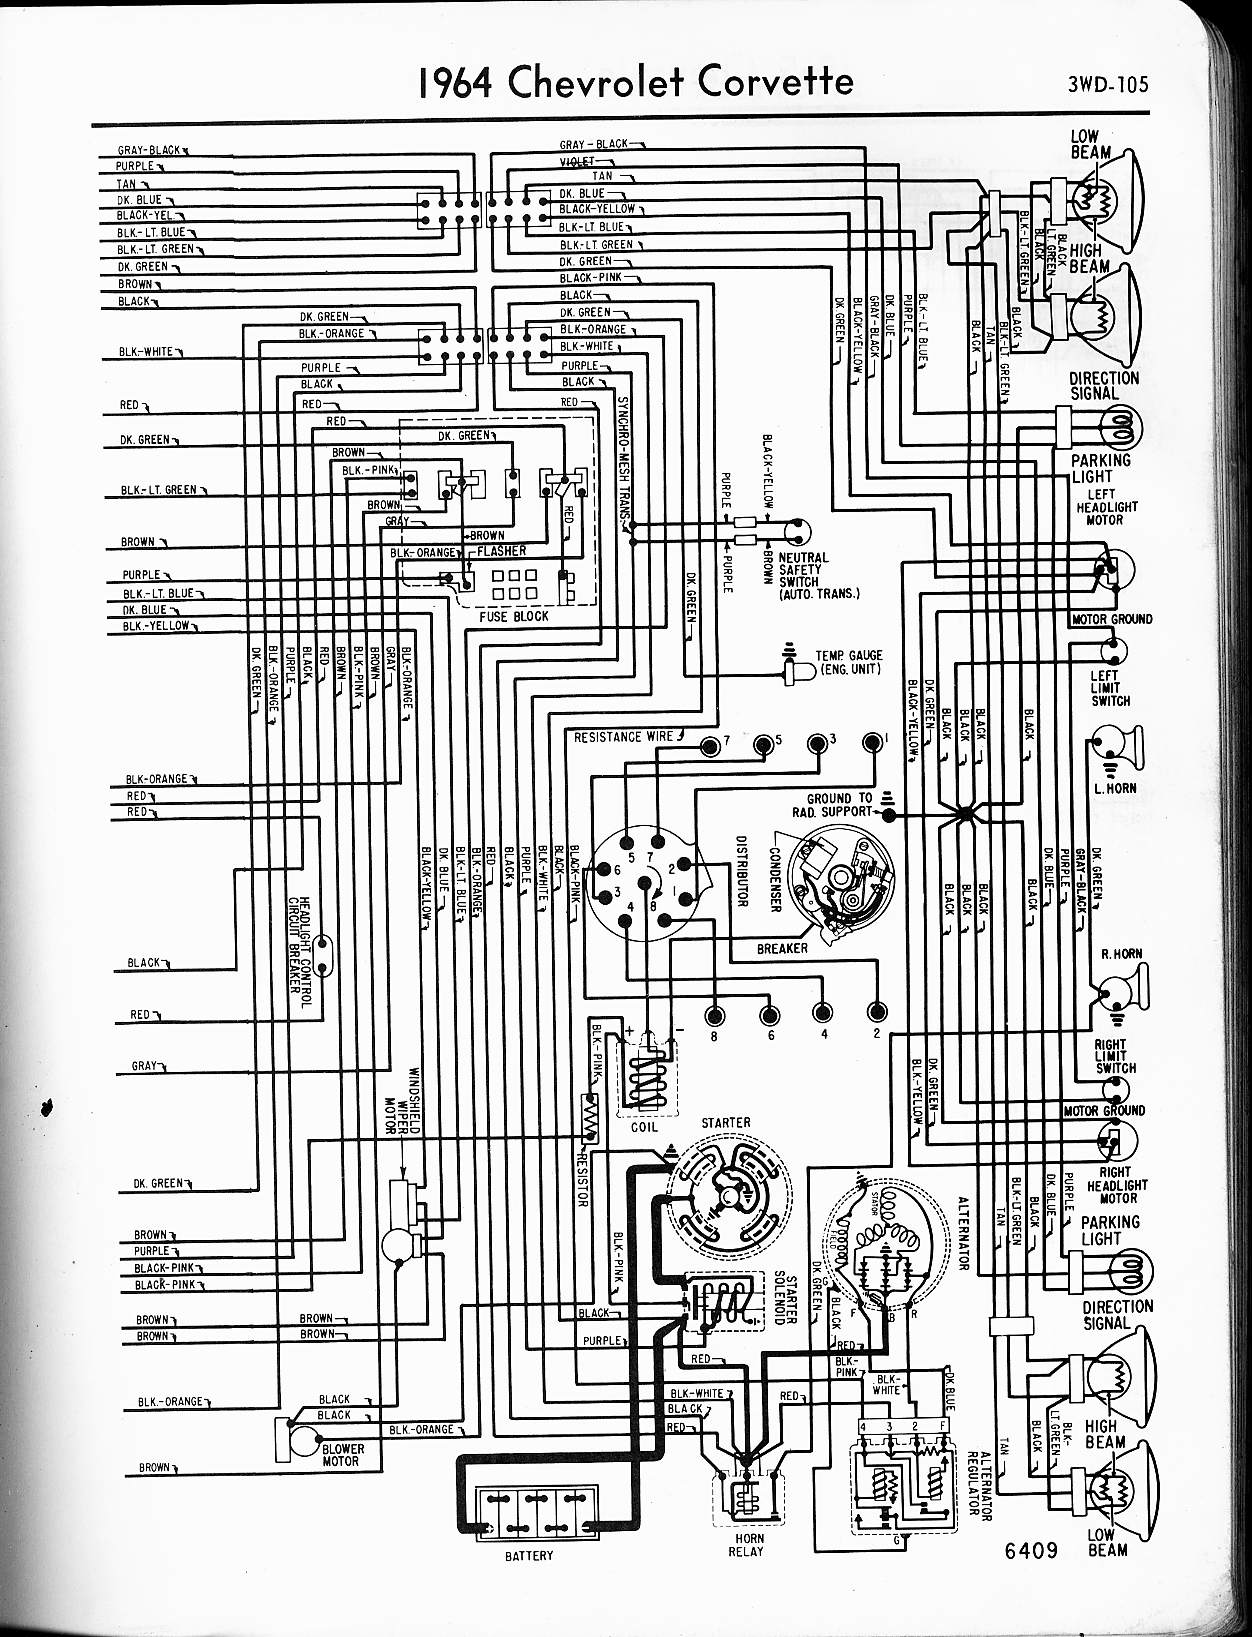 1971 Corvette Wiring Diagram Wiring Diagram Schematics 1974 Corvette Wiring  Harness 1967 Corvette Dash Wiring Schematic